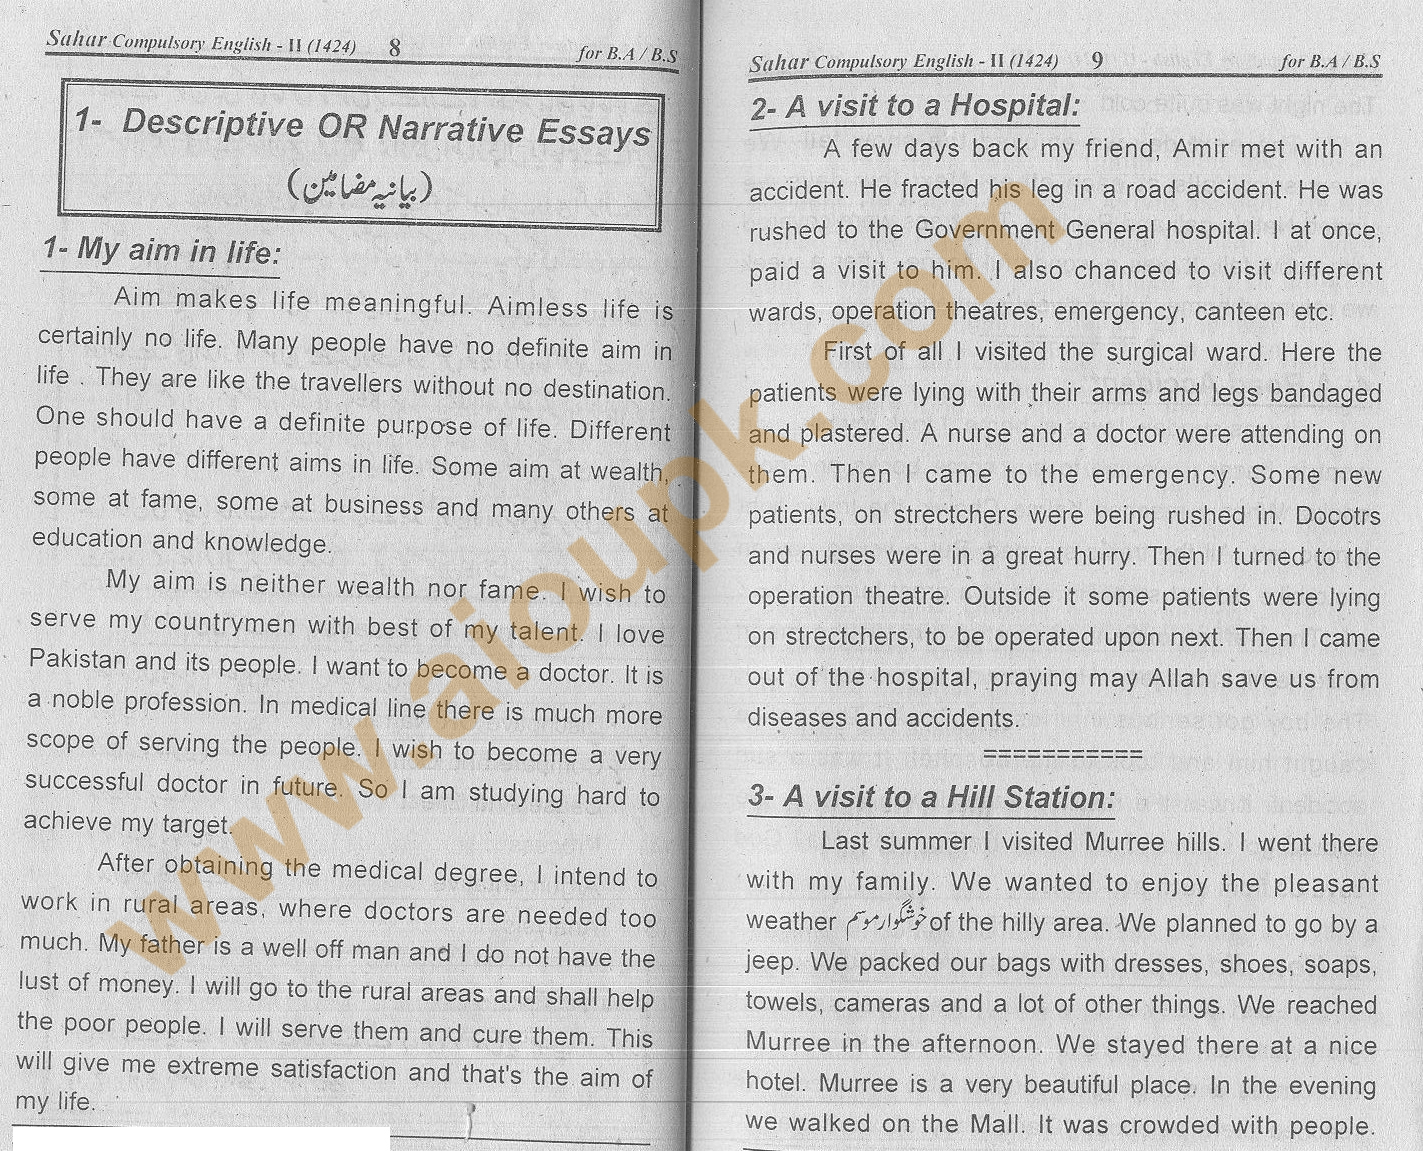 descriptive narrative essays for ba bs english ii 1424 2 english essays for ba aiou ldquo